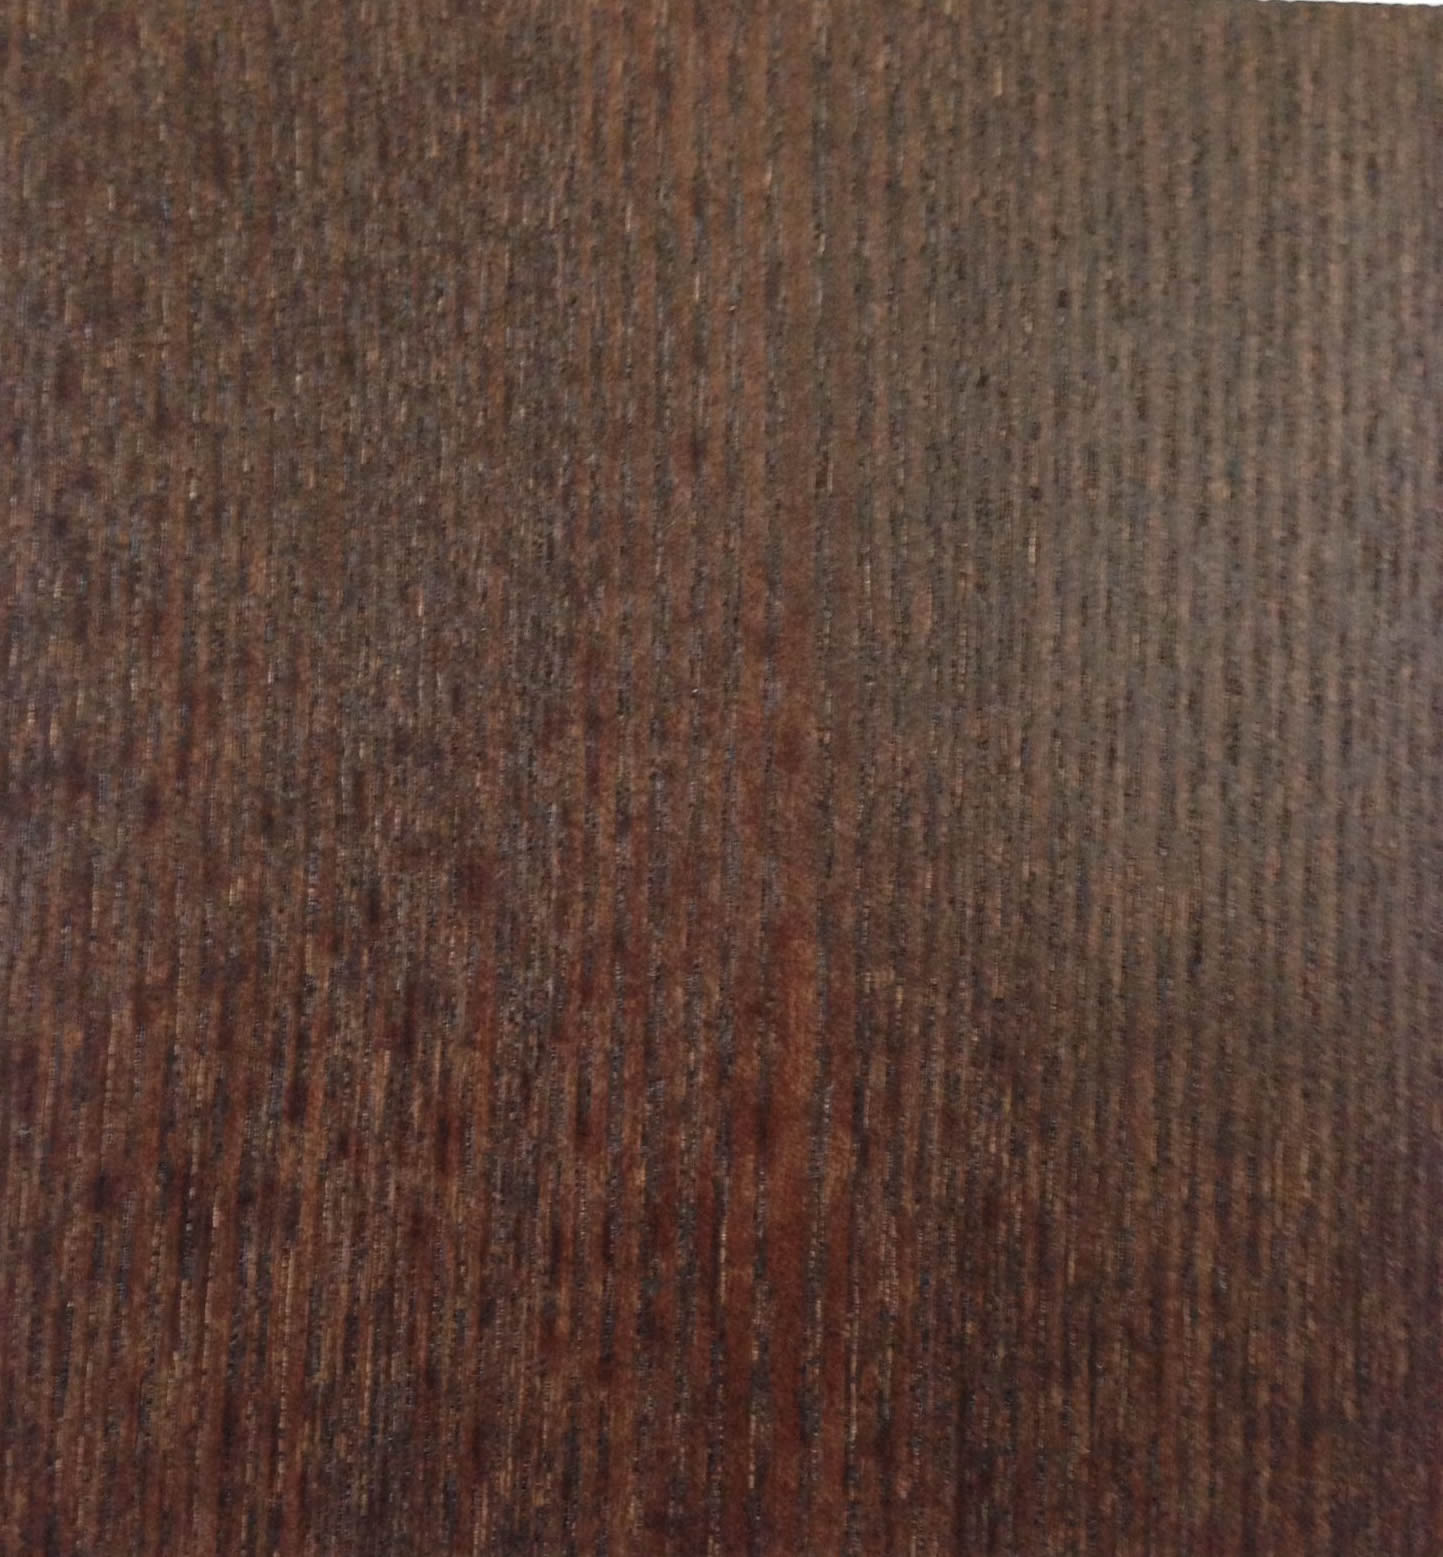 Japanese Ash Stained 080105